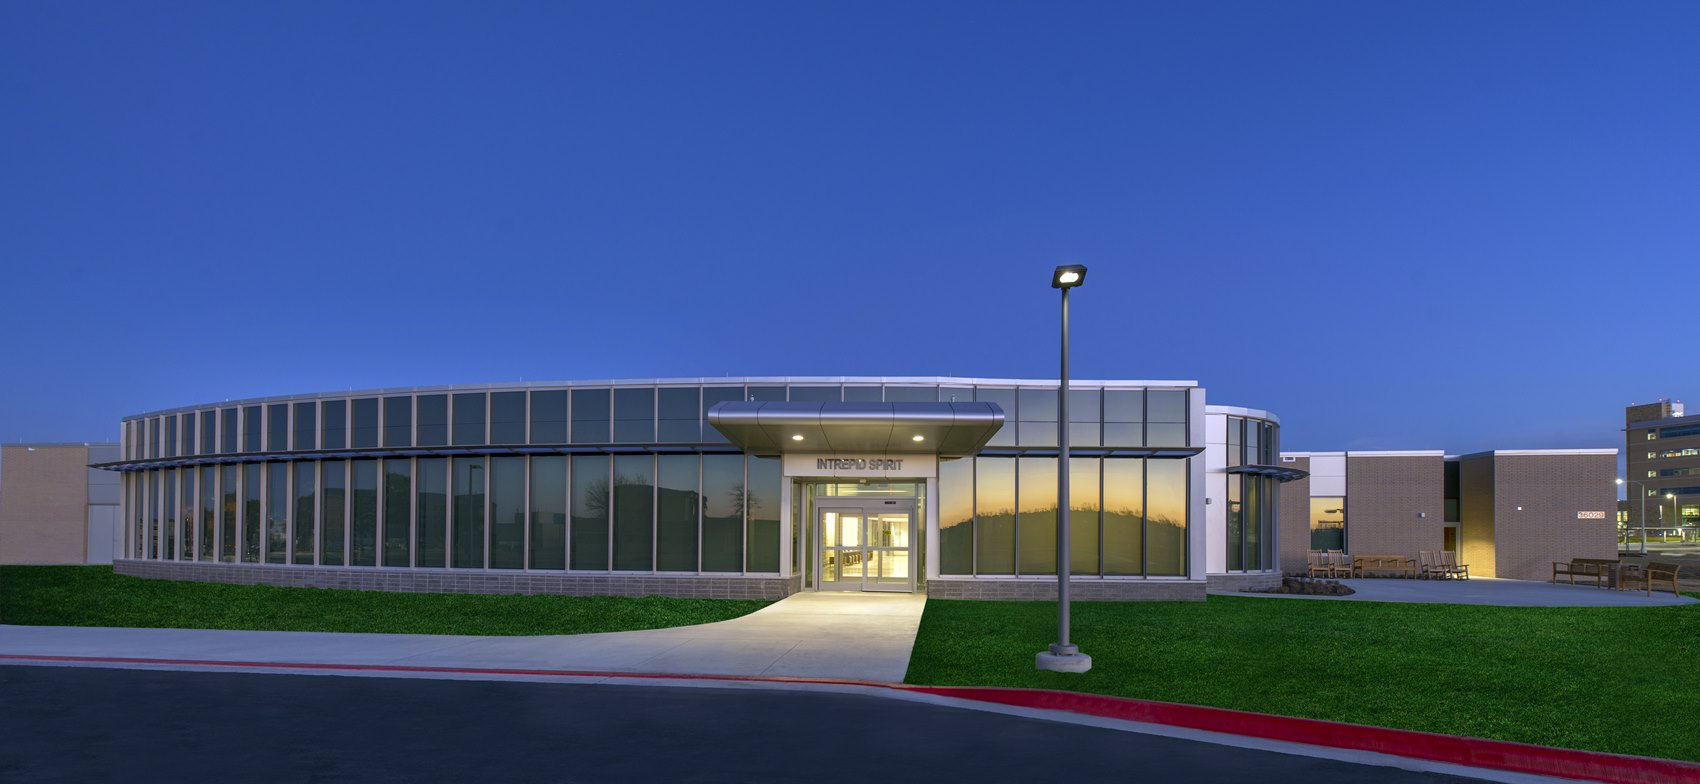 Exterior view of the National Intrepid Center of Excellence facility in Fort Hood